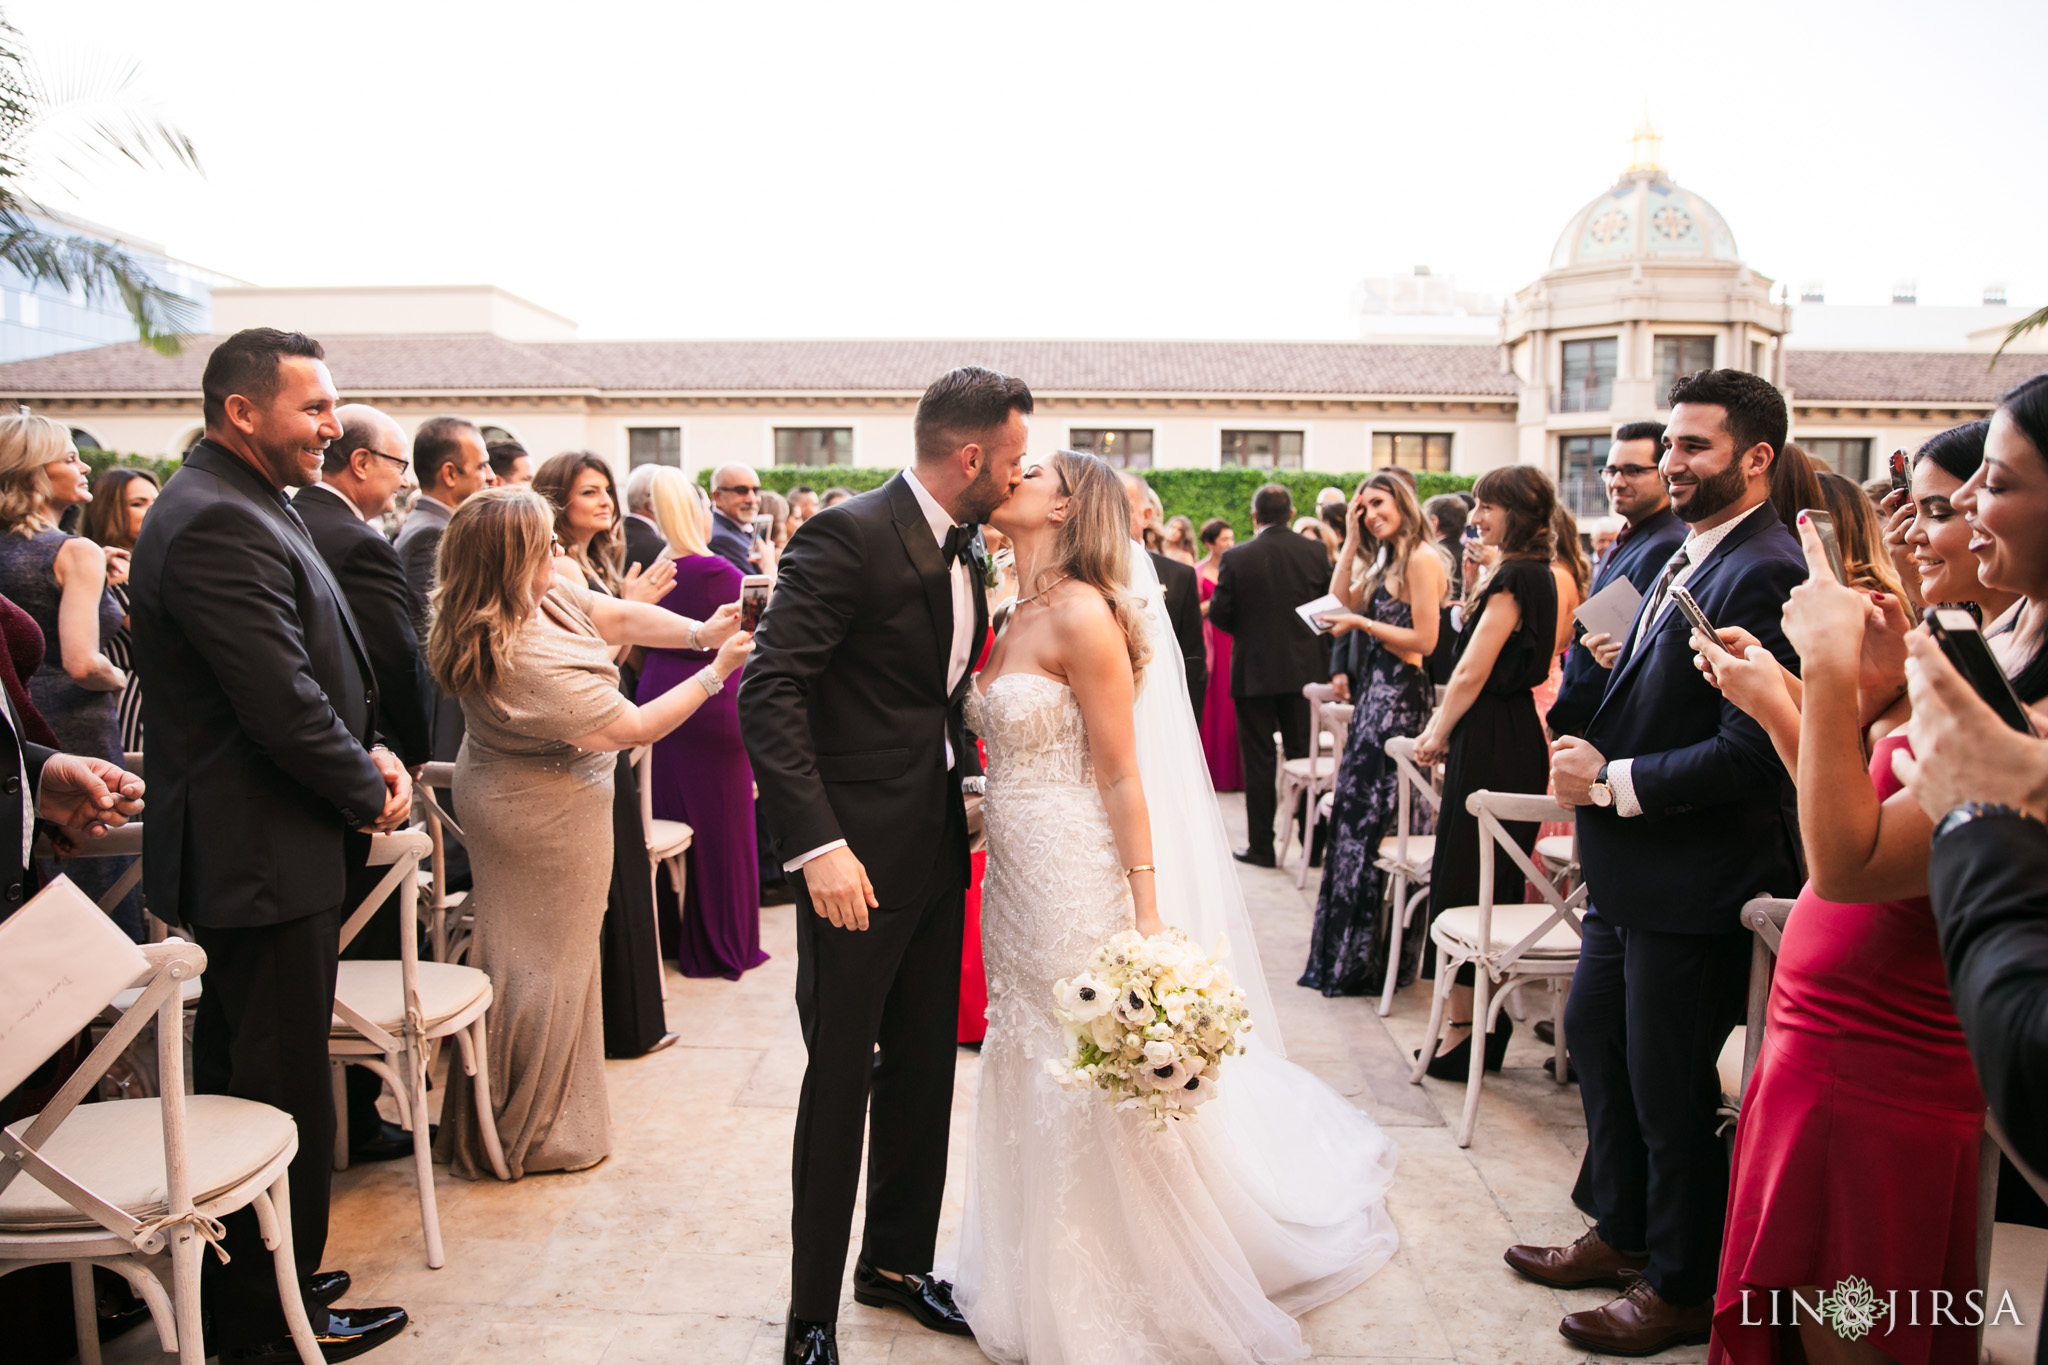 29 montage beverly hills persian wedding photography